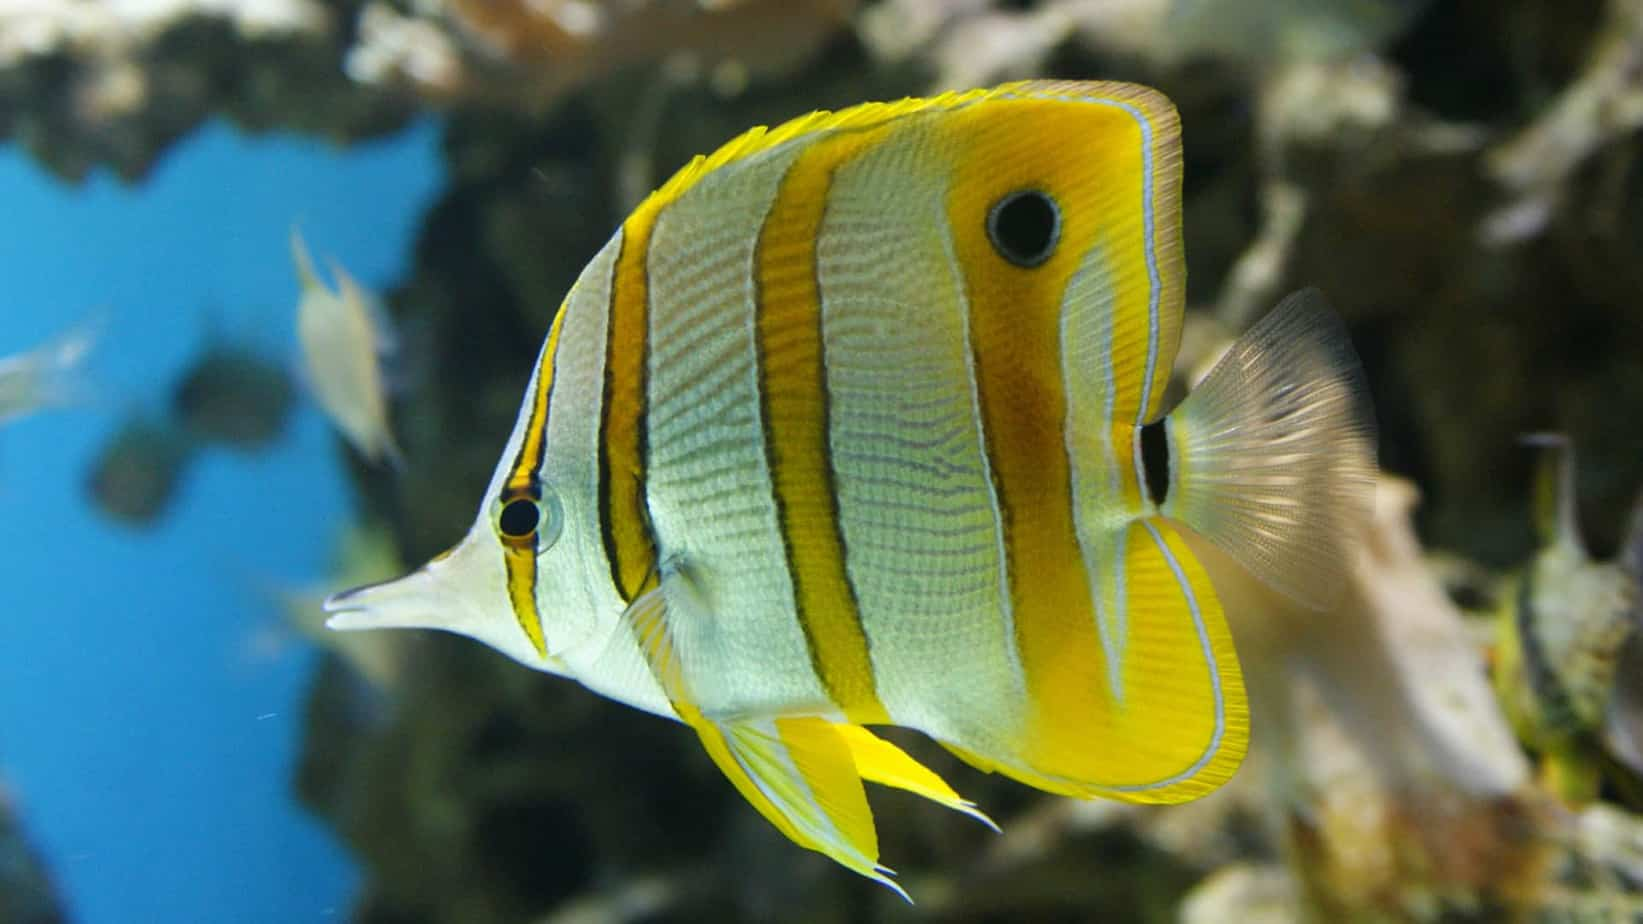 The 10 best saltwater fish for beginners fishkeeping advice for Photos of fish